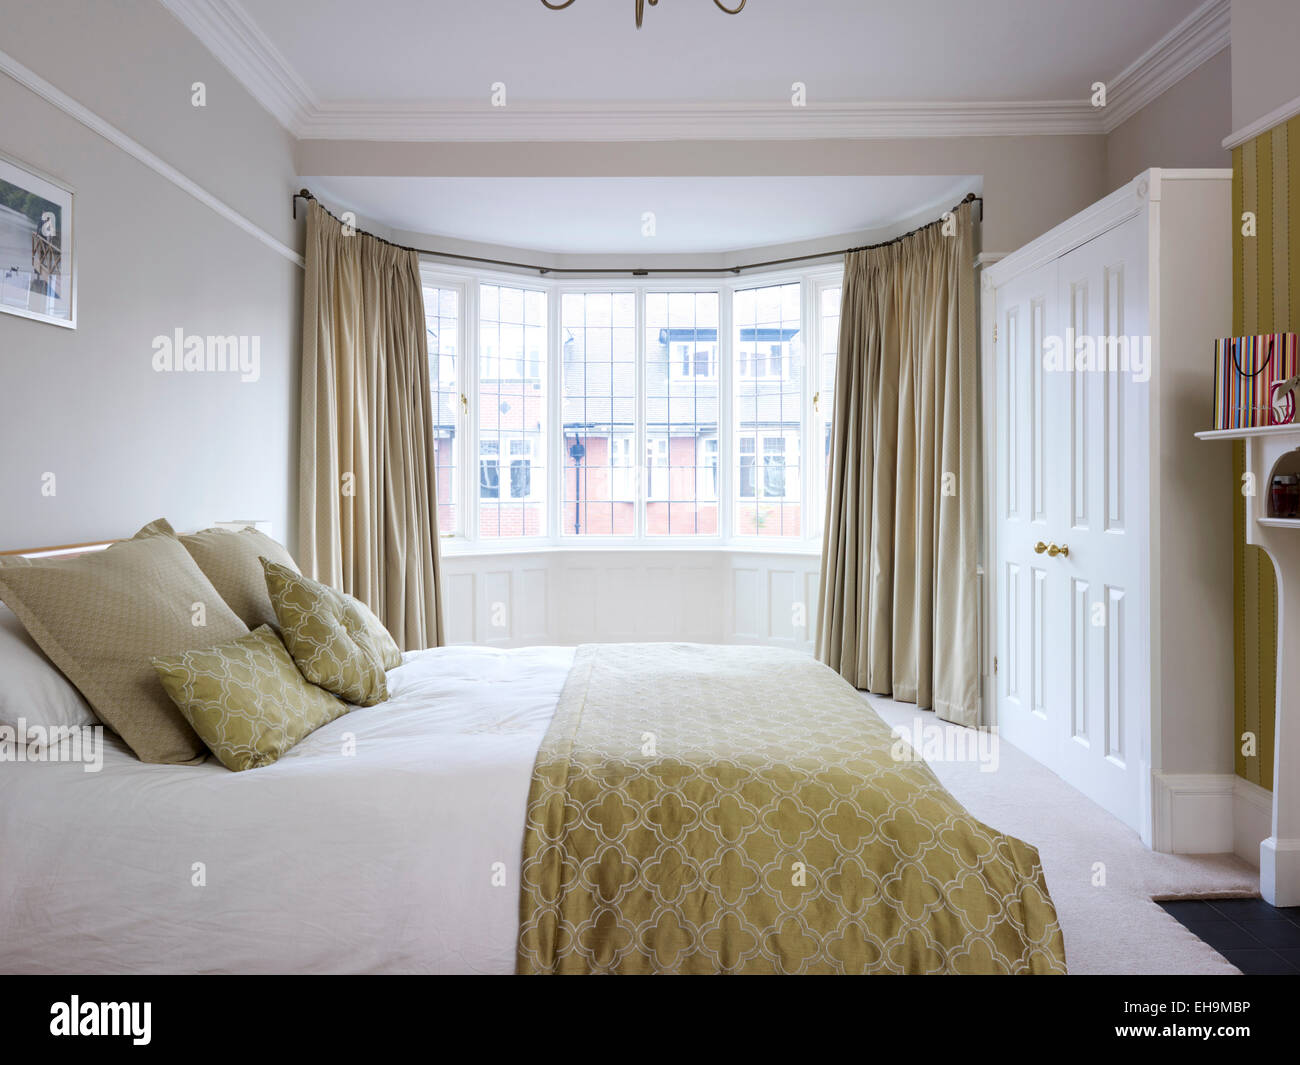 Spacious Bedroom With Double Bed And Bay Windows Residential House Stock Photo Alamy